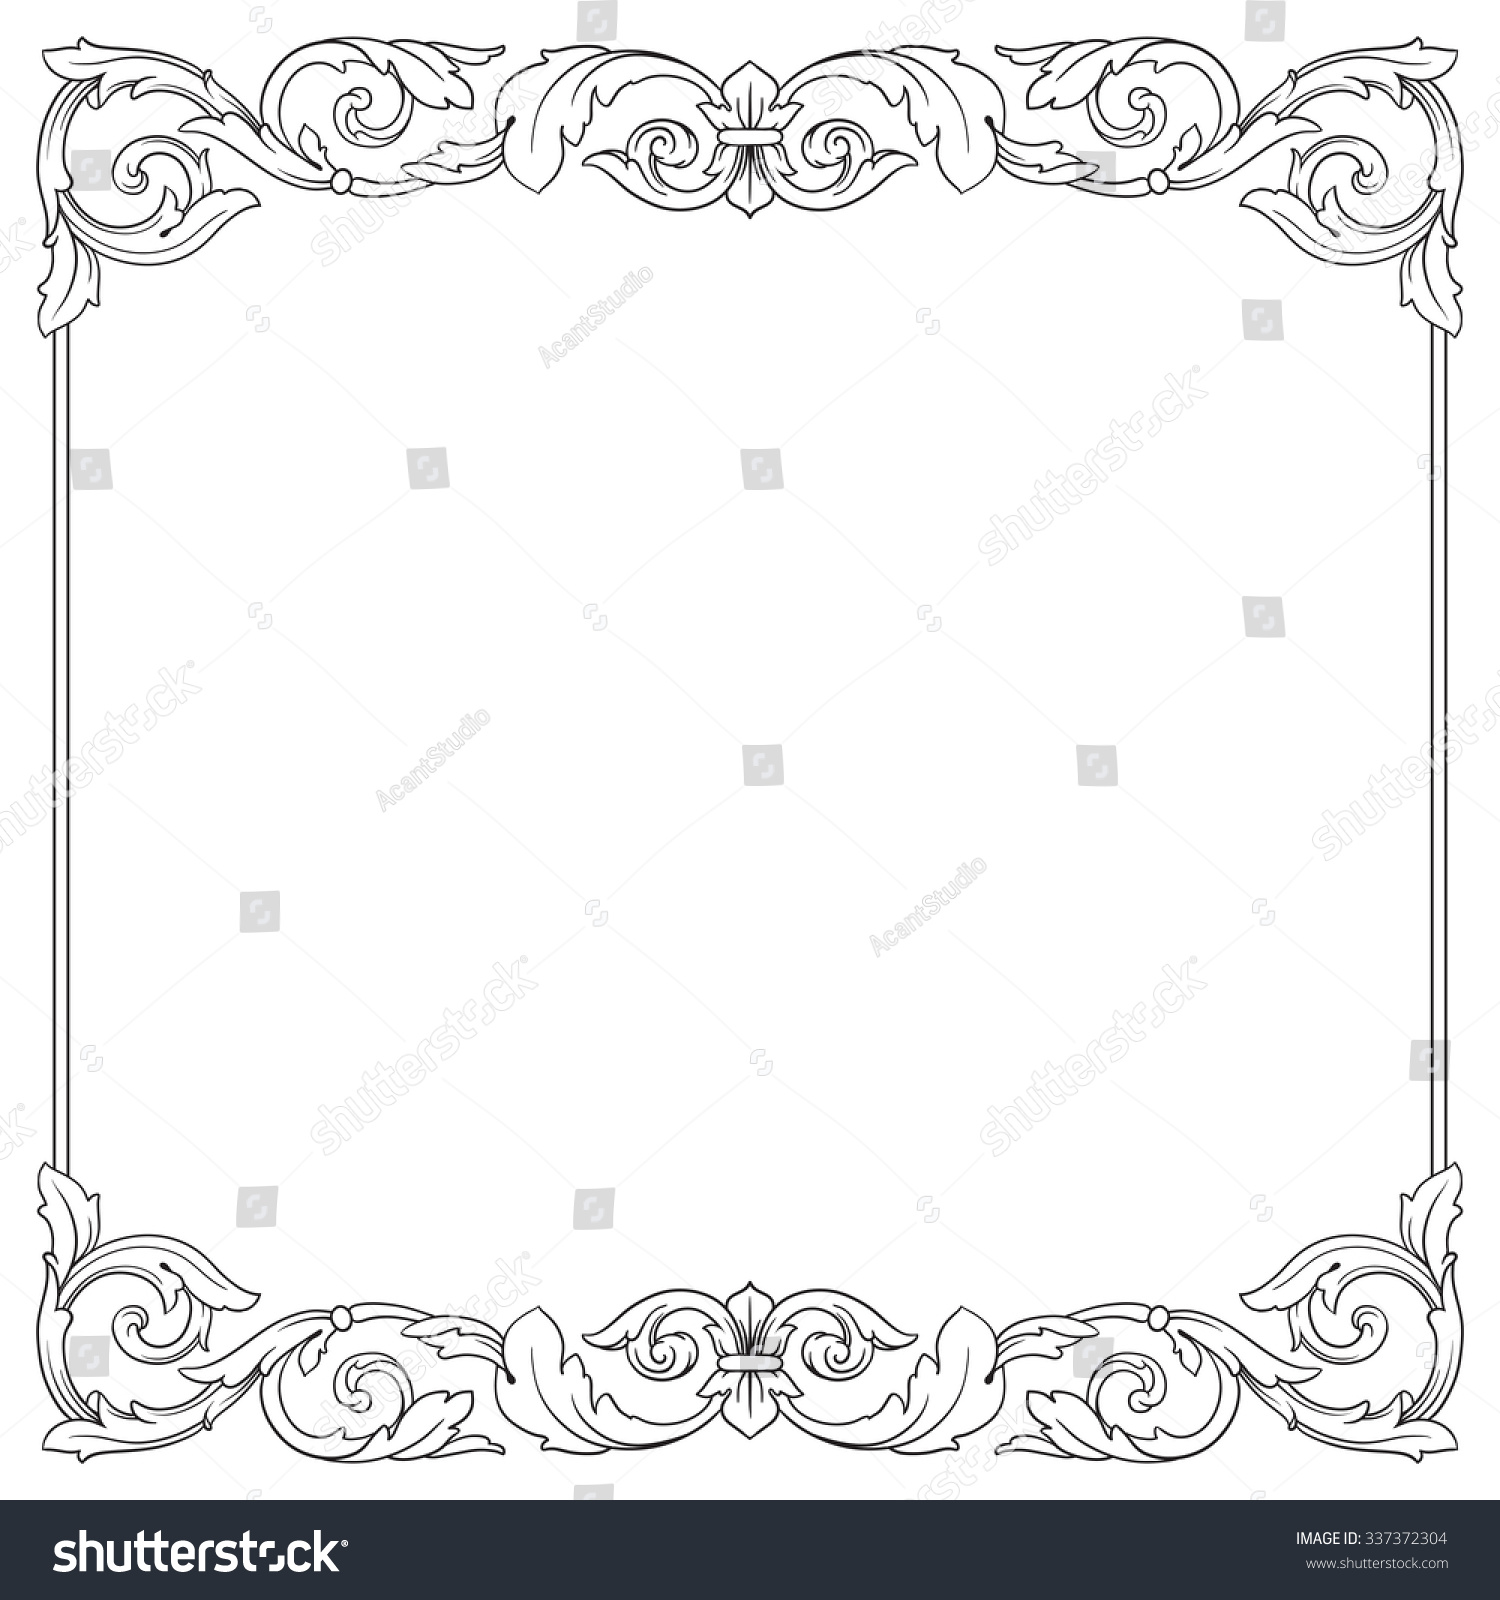 Vintage baroque frame scroll ornament engraving border floral retro pattern antique style acanthus foliage swirl decorative design element filigree calligraphy vector damask stock vector